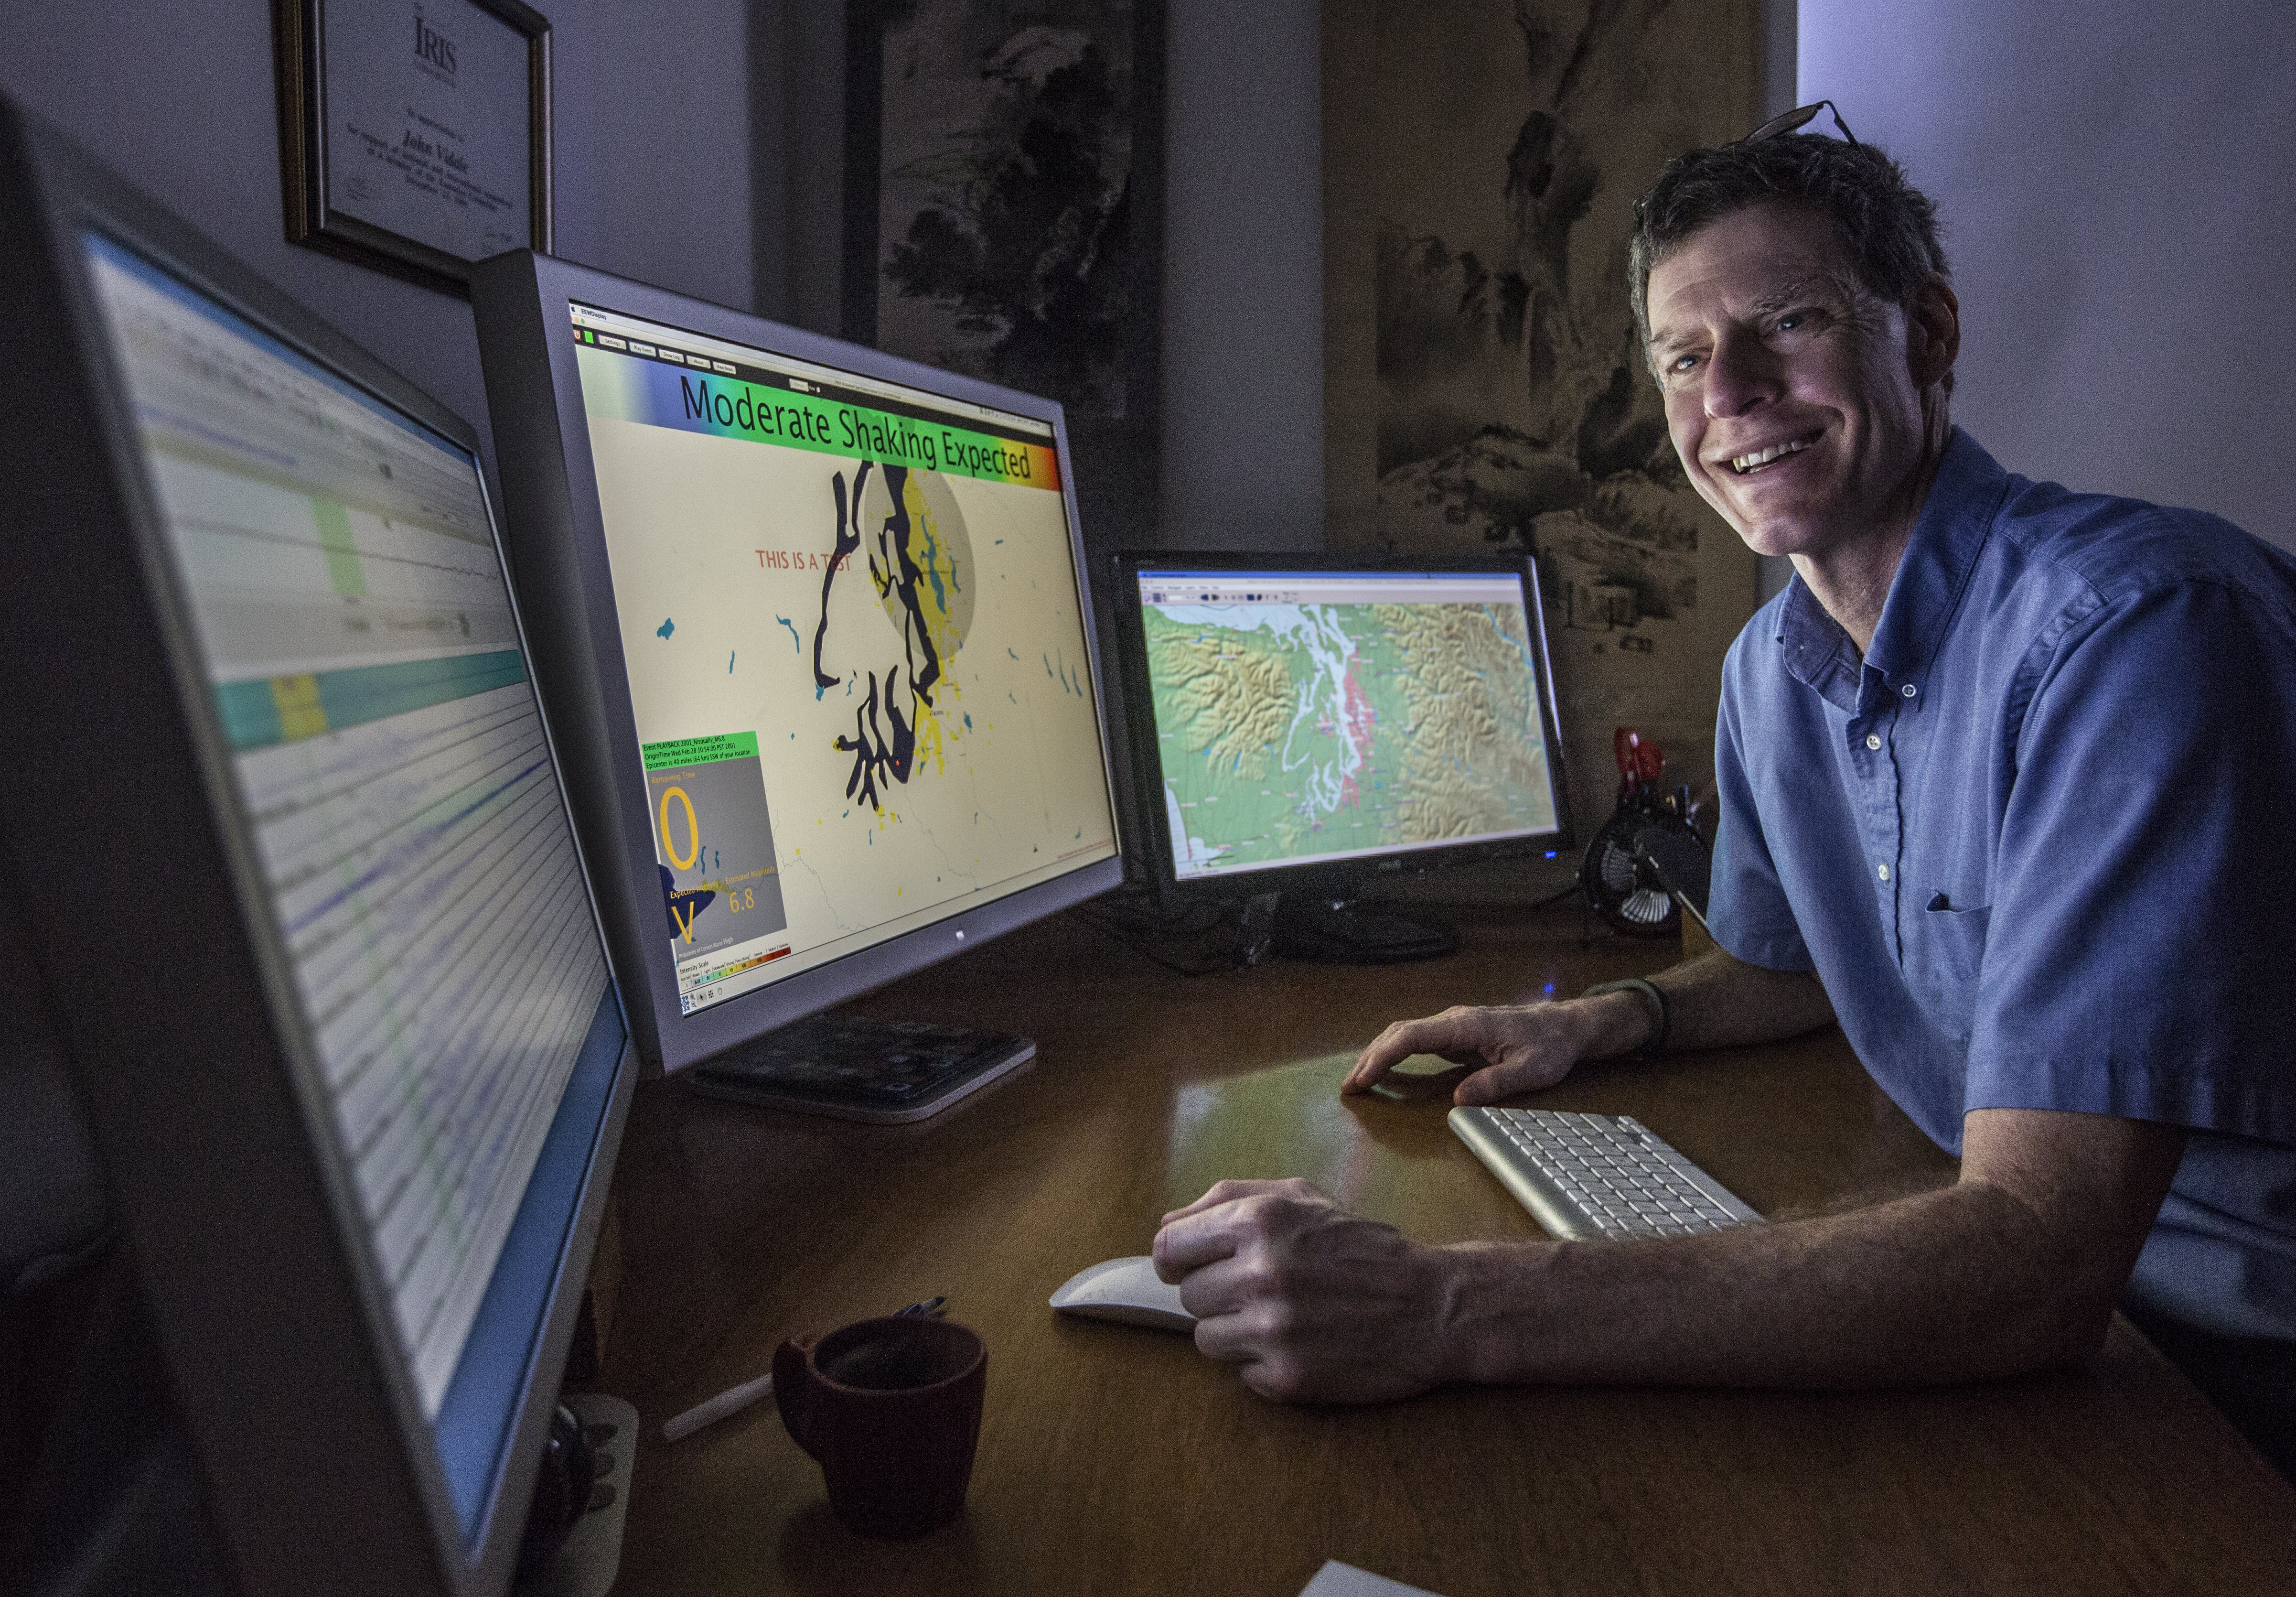 John Vidale,  director of Pacific Northwest Seismic Network, shows the earthquake early warning system at the University of Washington on Feb. 9 in Seattle. Companies including Boeing, Alaska Airlines and Intel will be able to work with the system and figure out how to make use of warning times. Tests of the system started Tuesday.   AP/THE SEATTLE TIMES, STEVE RINGMAN